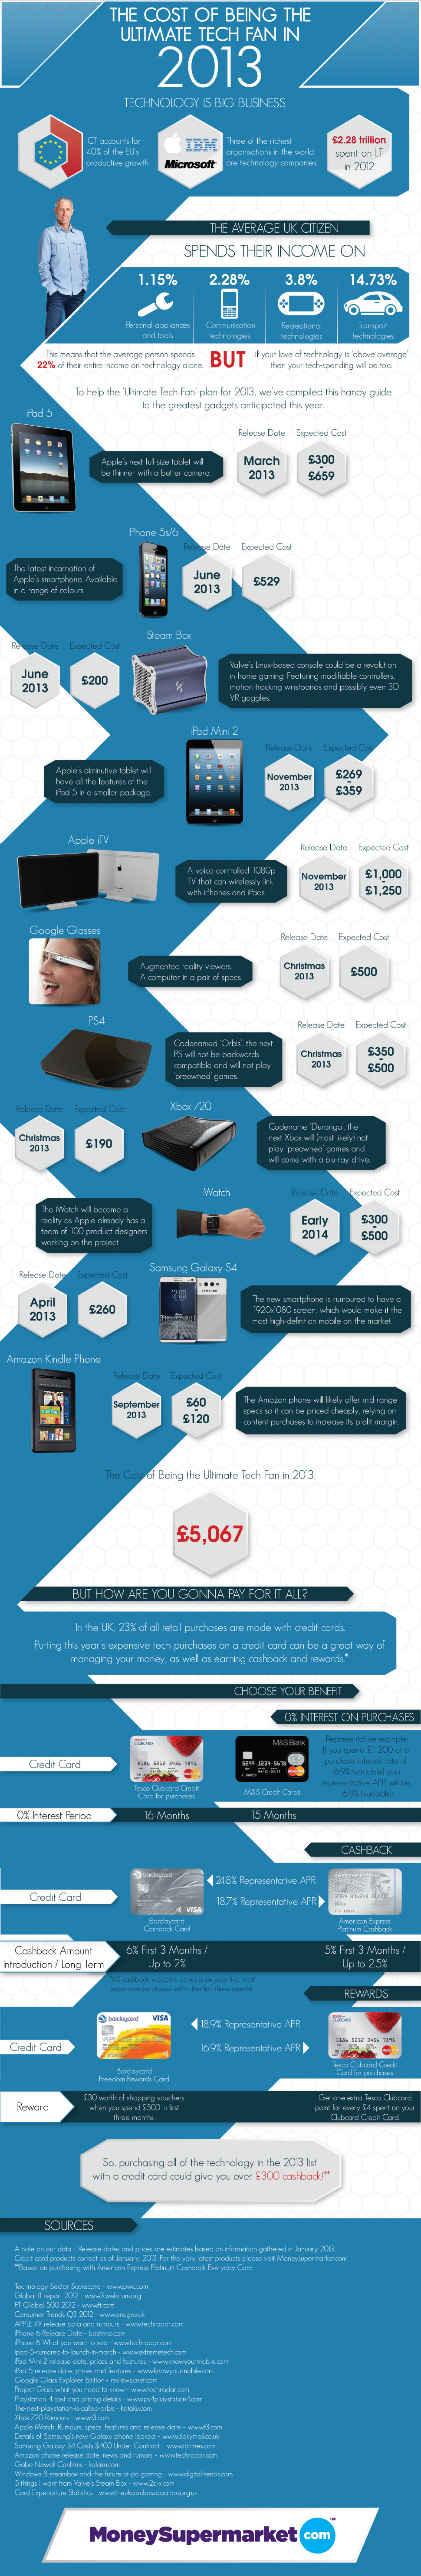 The Cost of Being the Ultimate Tech Fan in 2013 Infographic